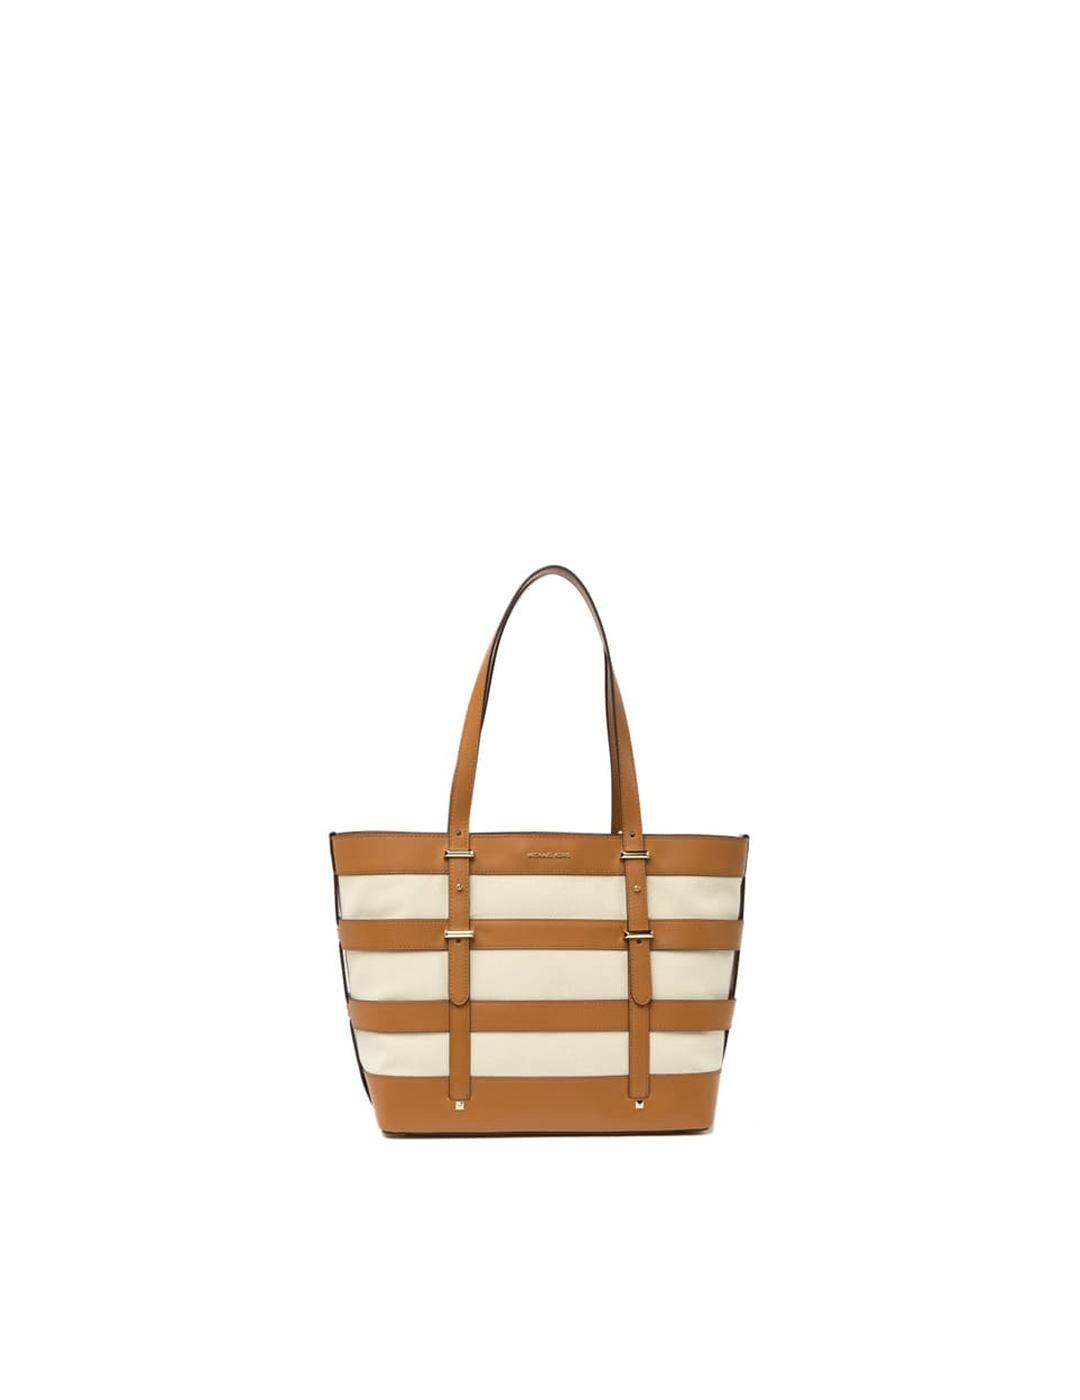 Bolso Michael Kors camel Marie Large Cage Tote